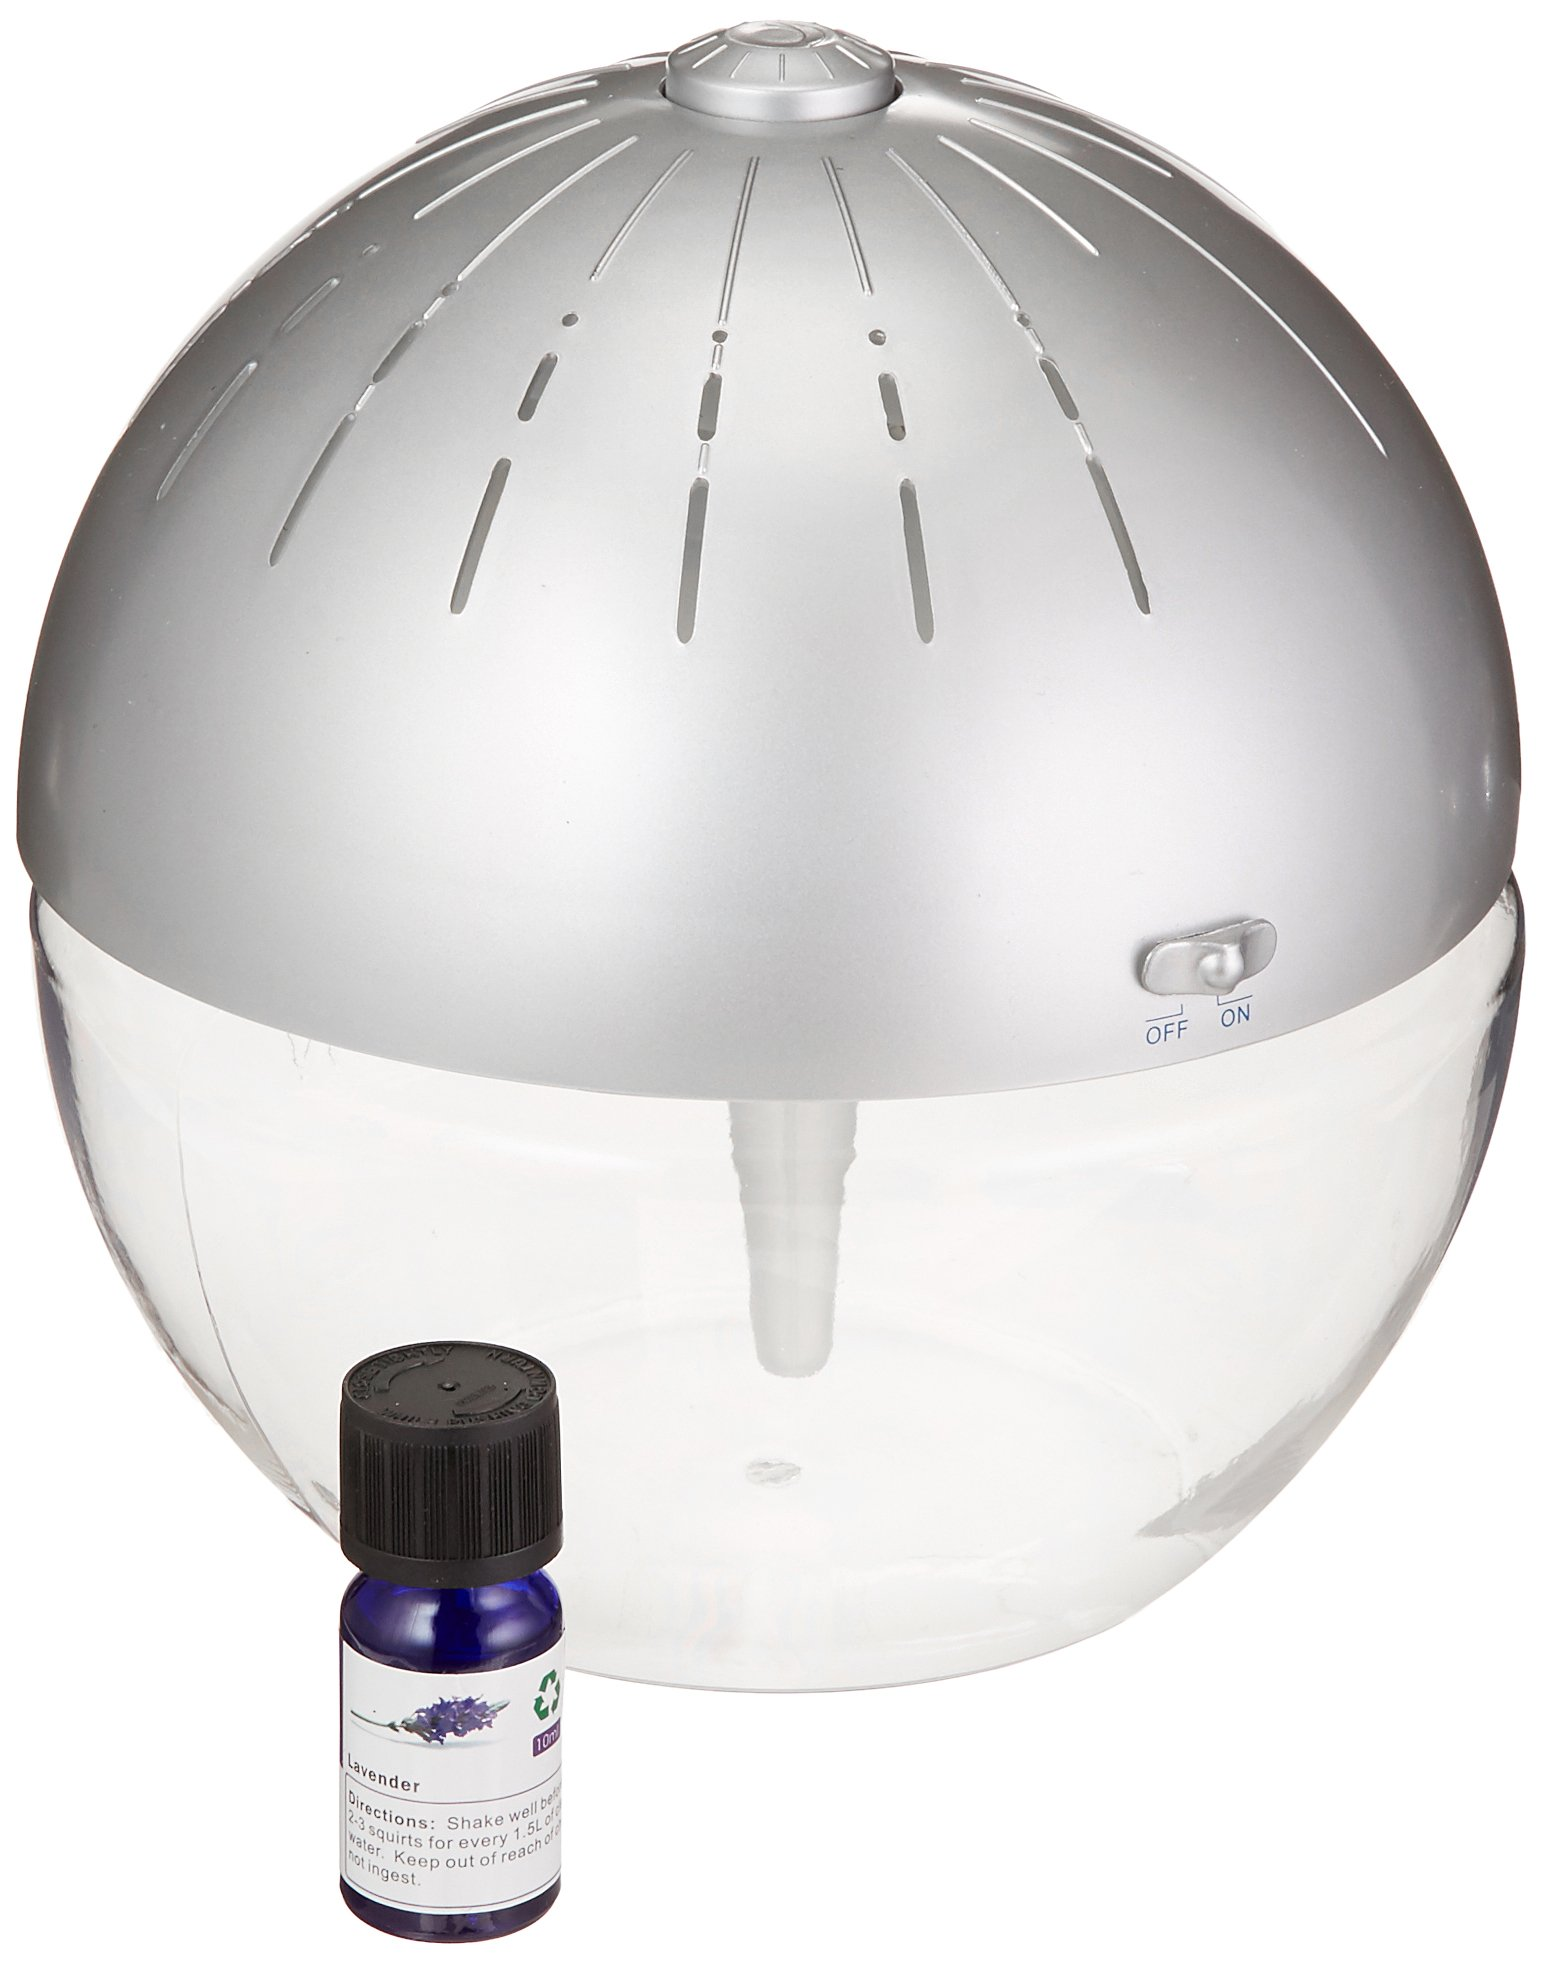 EcoGecko Earth Globe- Glowing Water Air Washer and Revitalizer with Lavender Oil, Silver